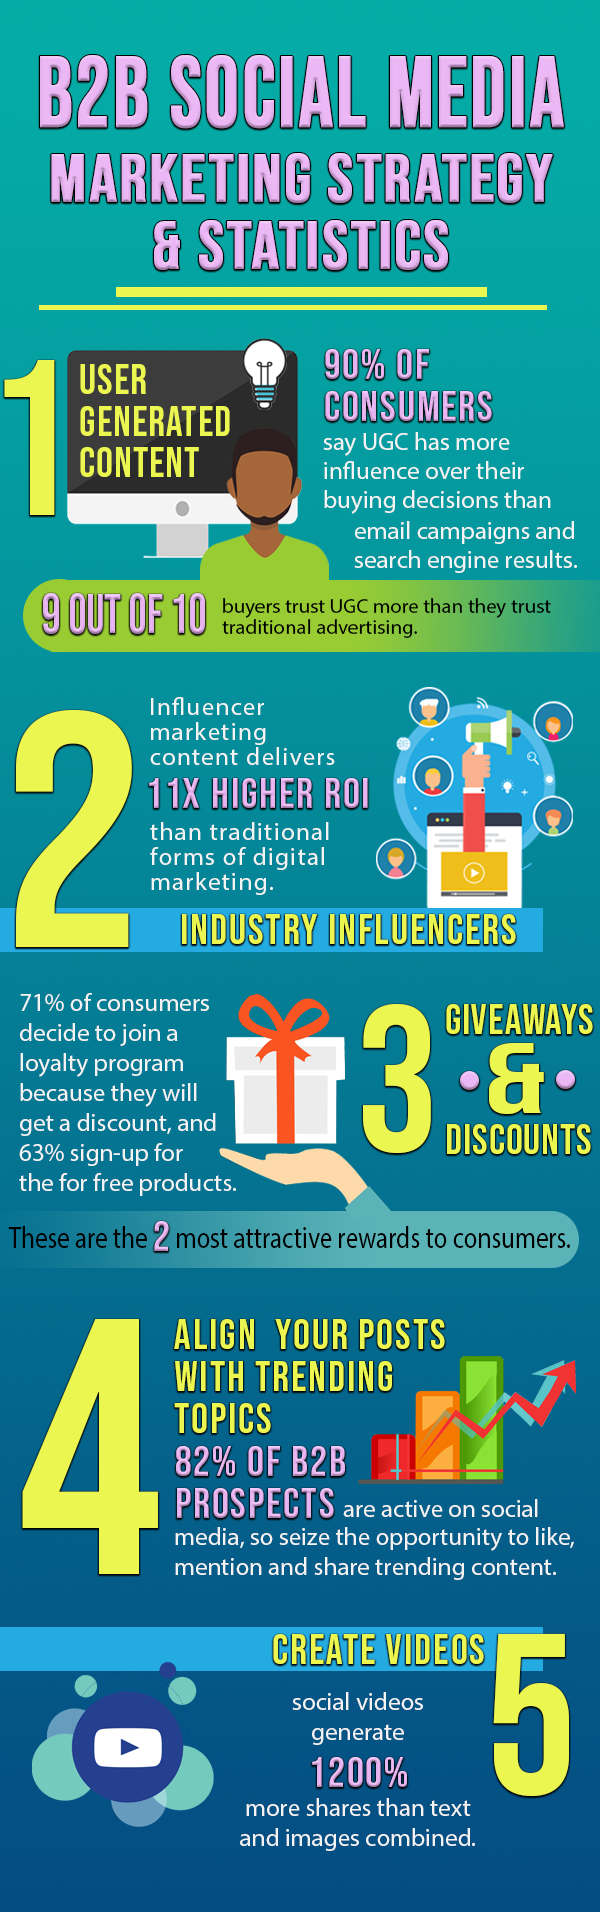 B2B Social Media Marketing Infographic